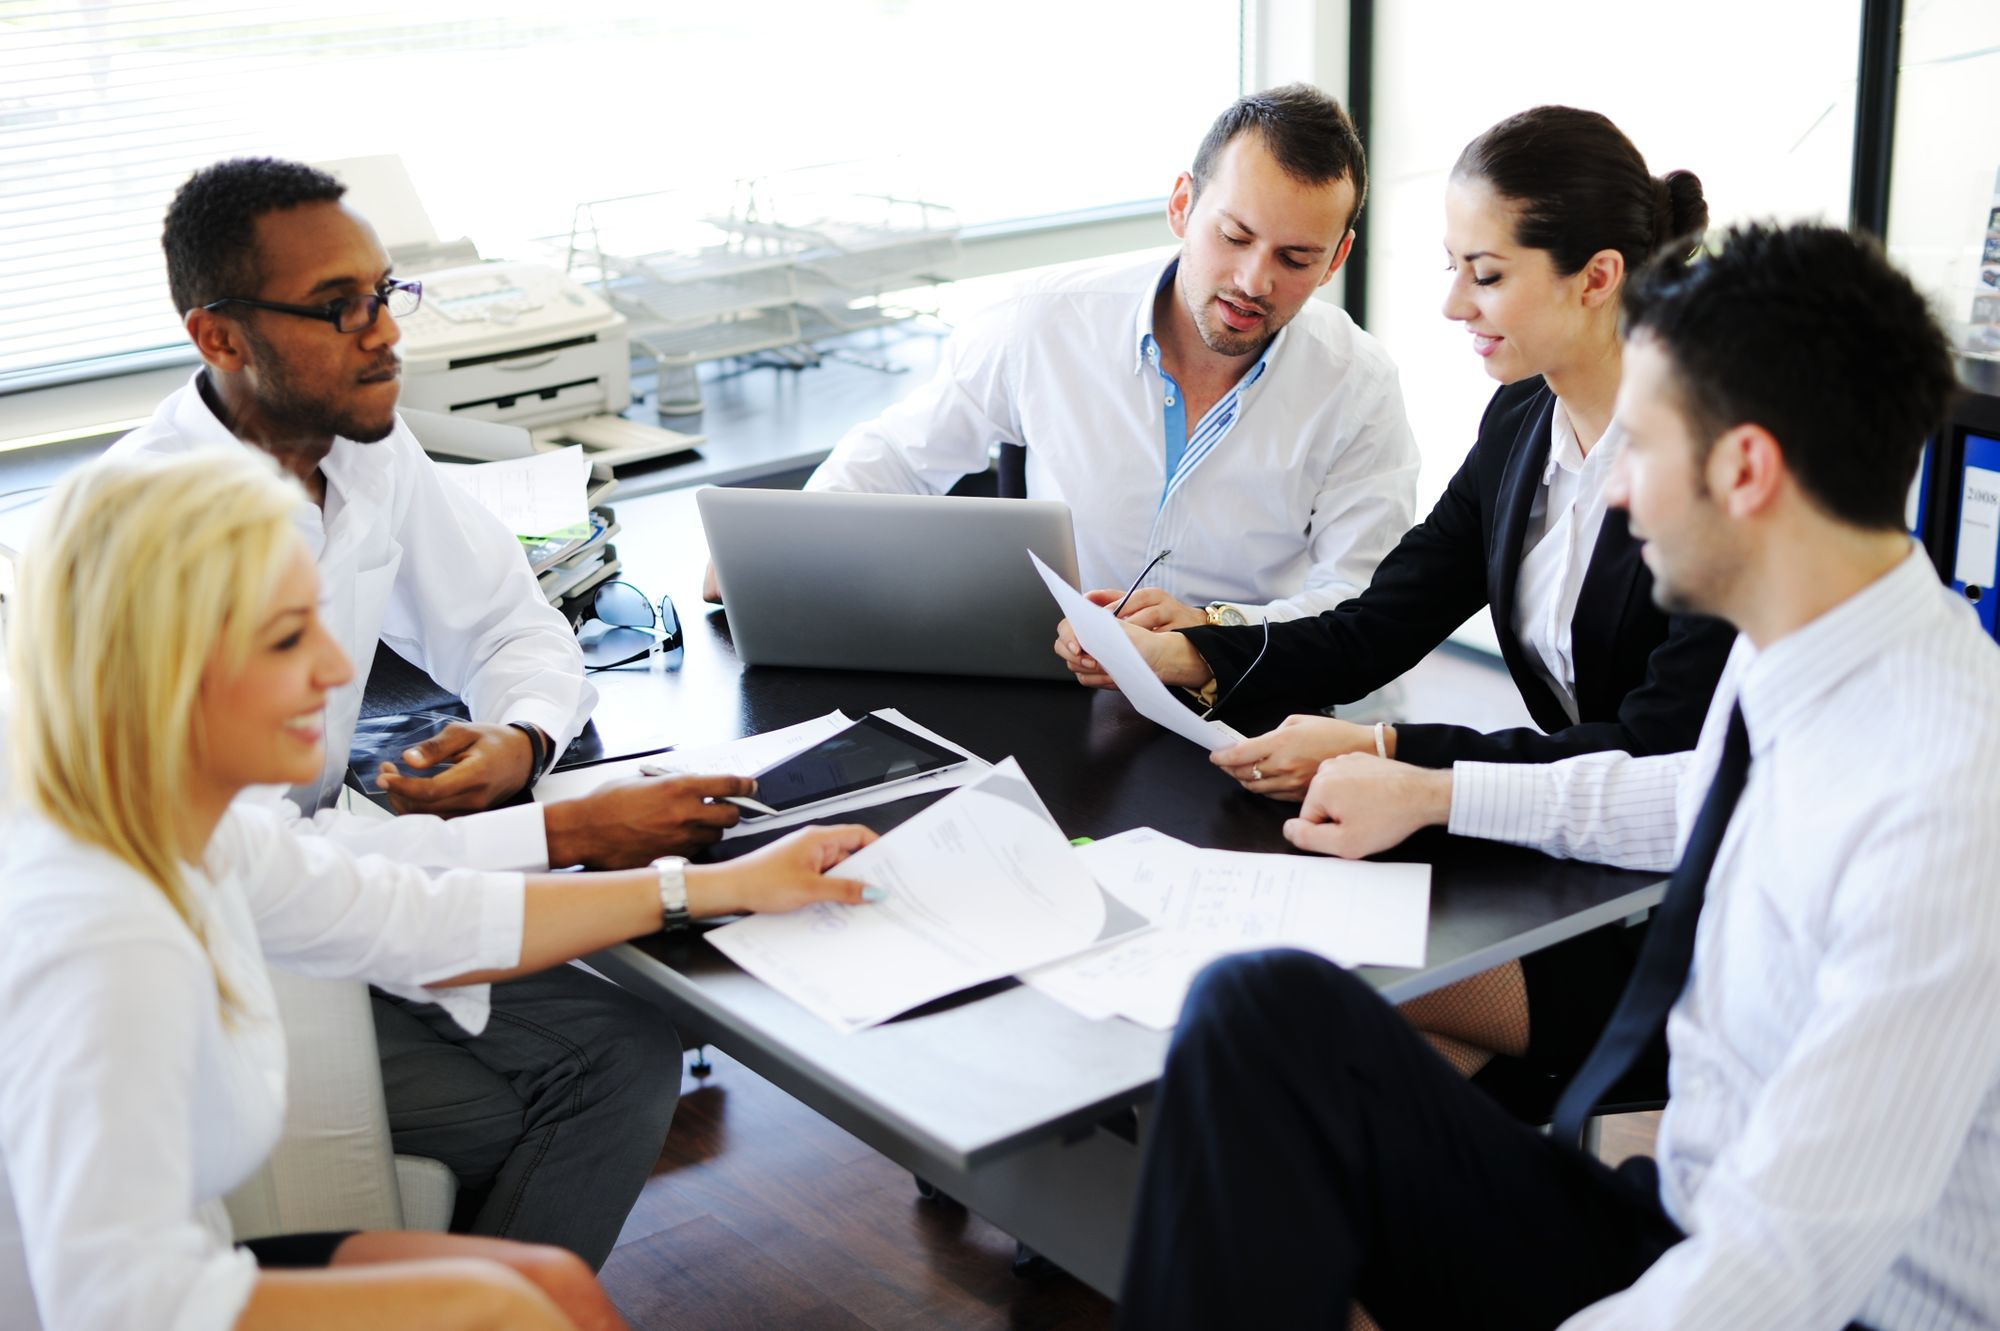 Why Companies prefer to work with HR Placement Consultancy 8 Benefits to work with HR Placement Consultancy